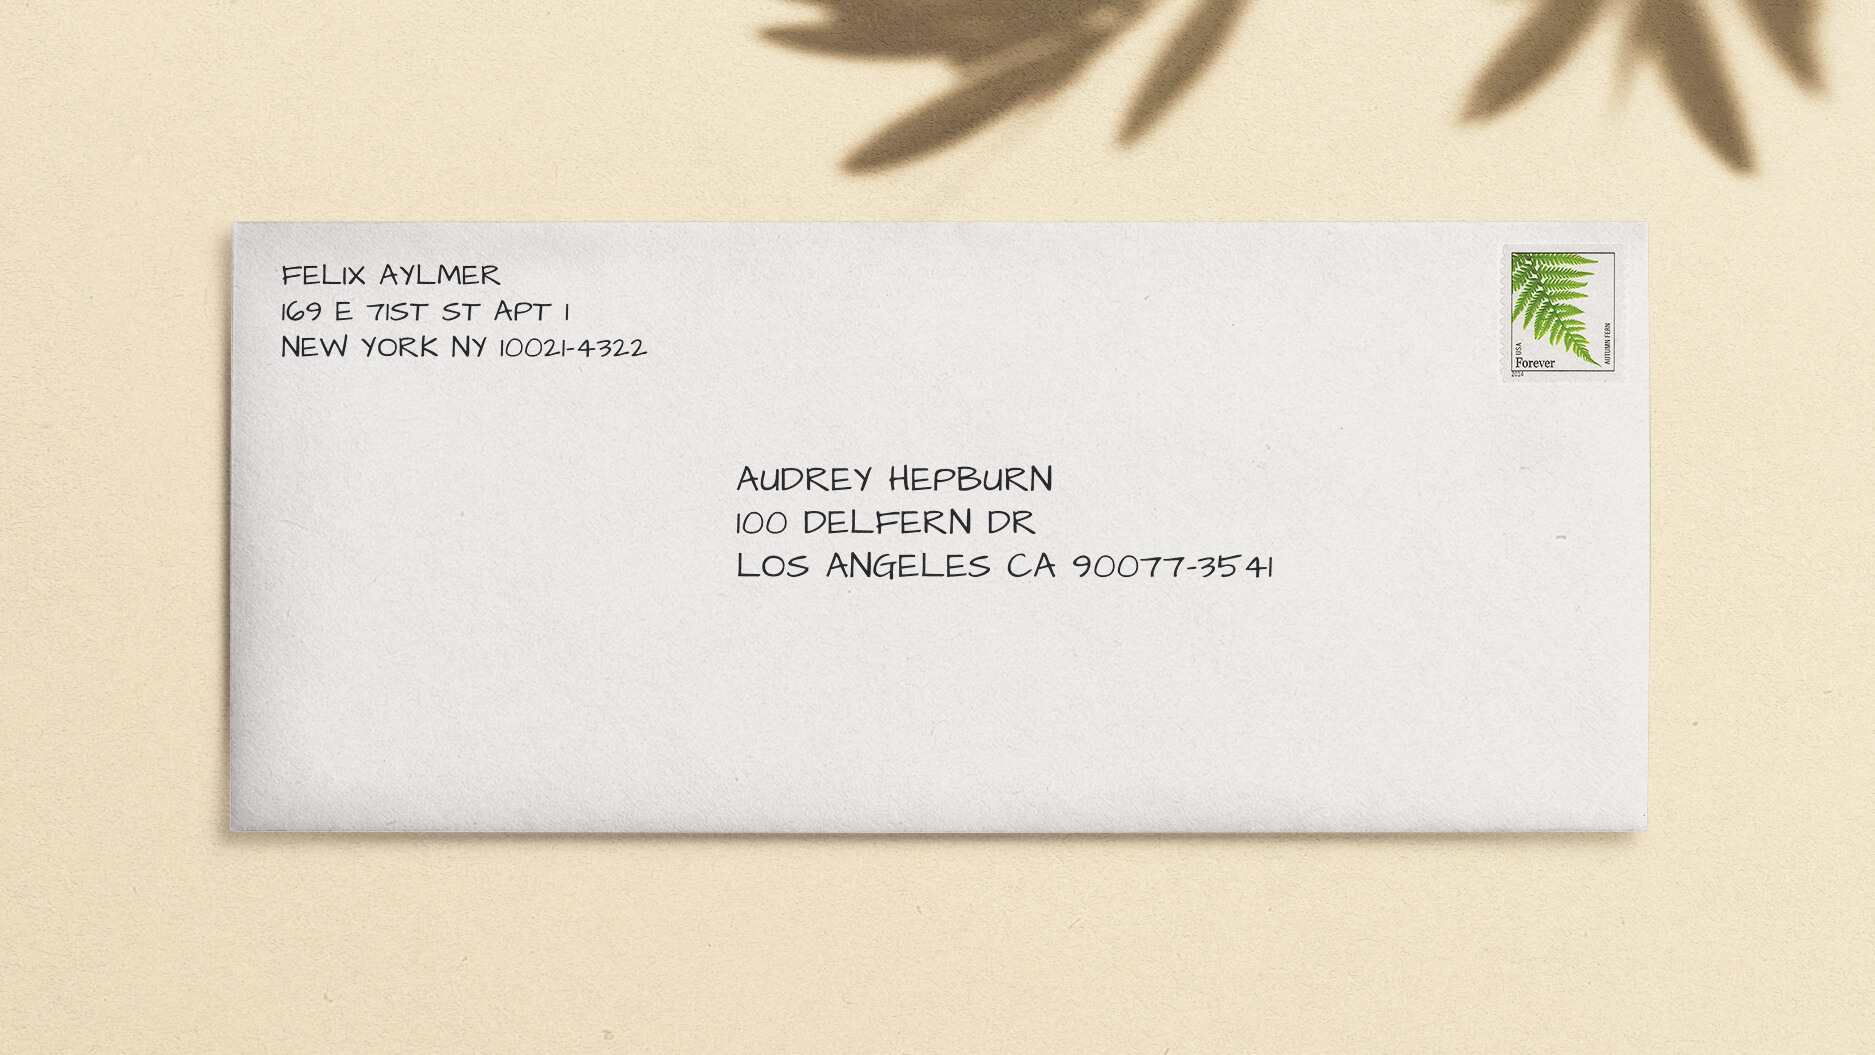 how do i write a return address with an apartment number